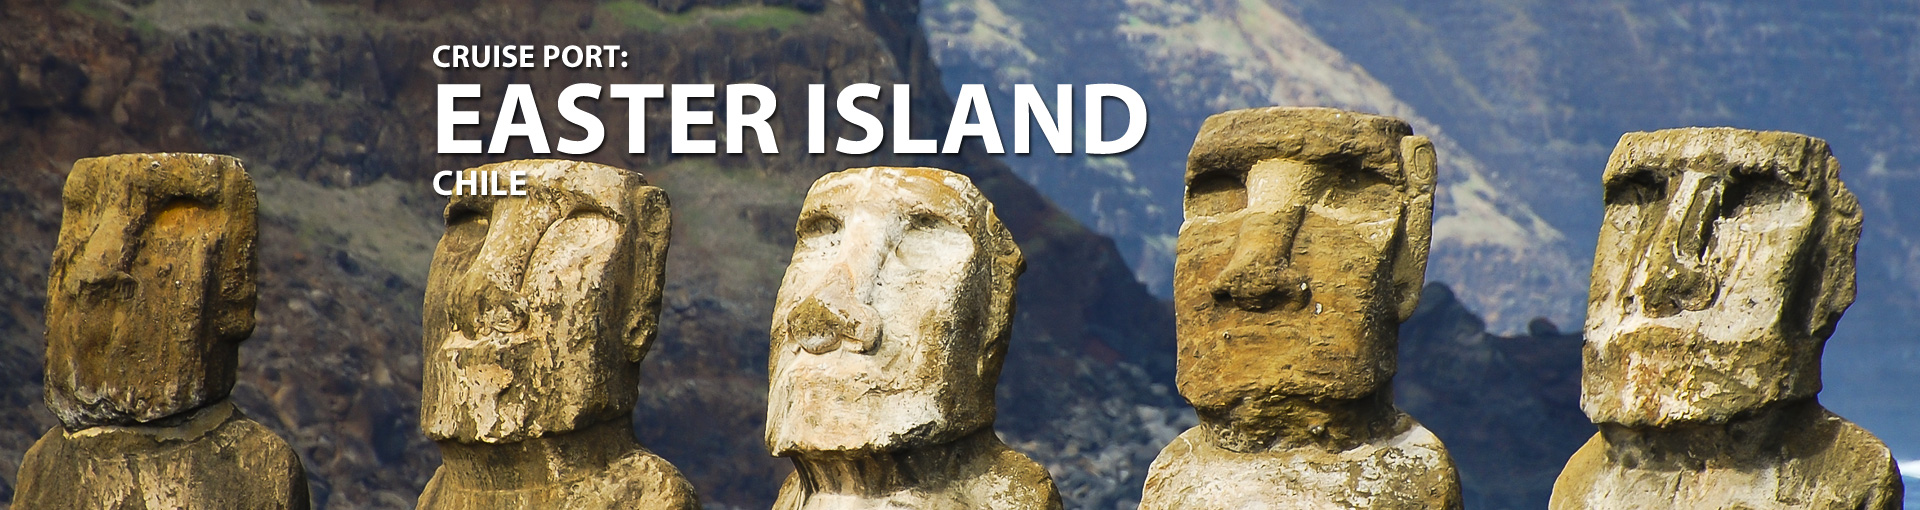 Cruises to Easter Island, Chile